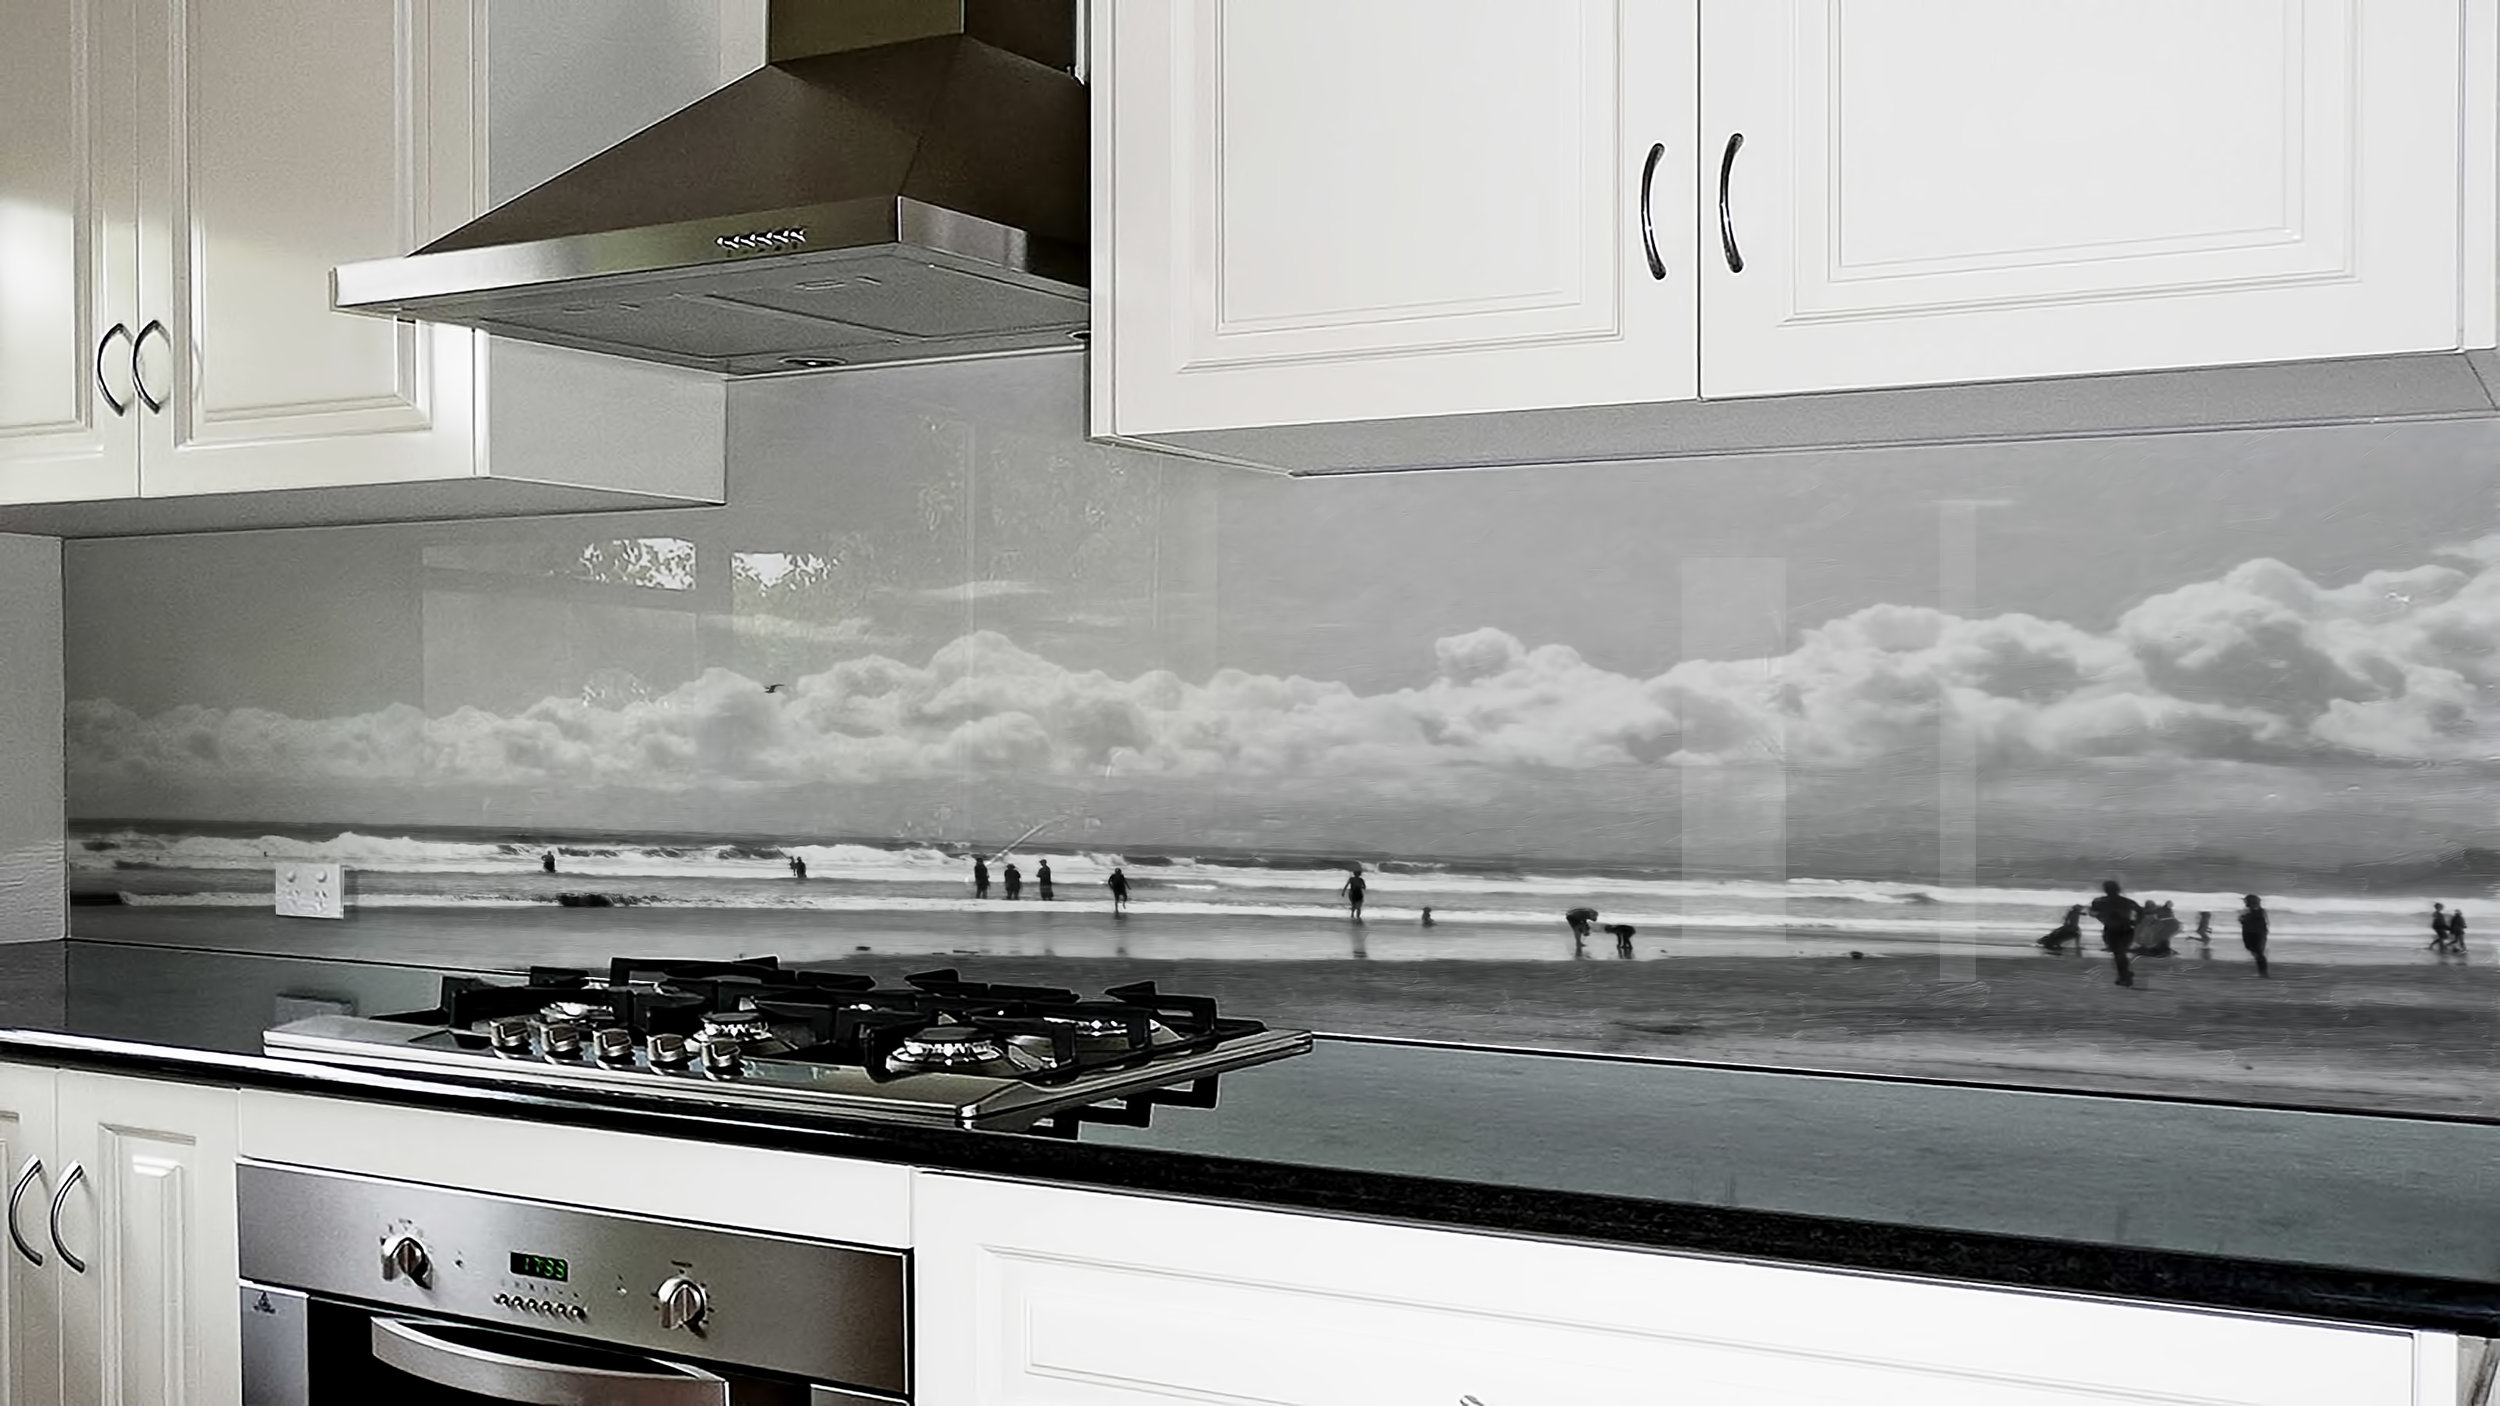 Classic kitchen - More classic designs suit monochromatic images, digital paintings and more muted colour tones which gives an air of sophistication.Image : Summer Fun